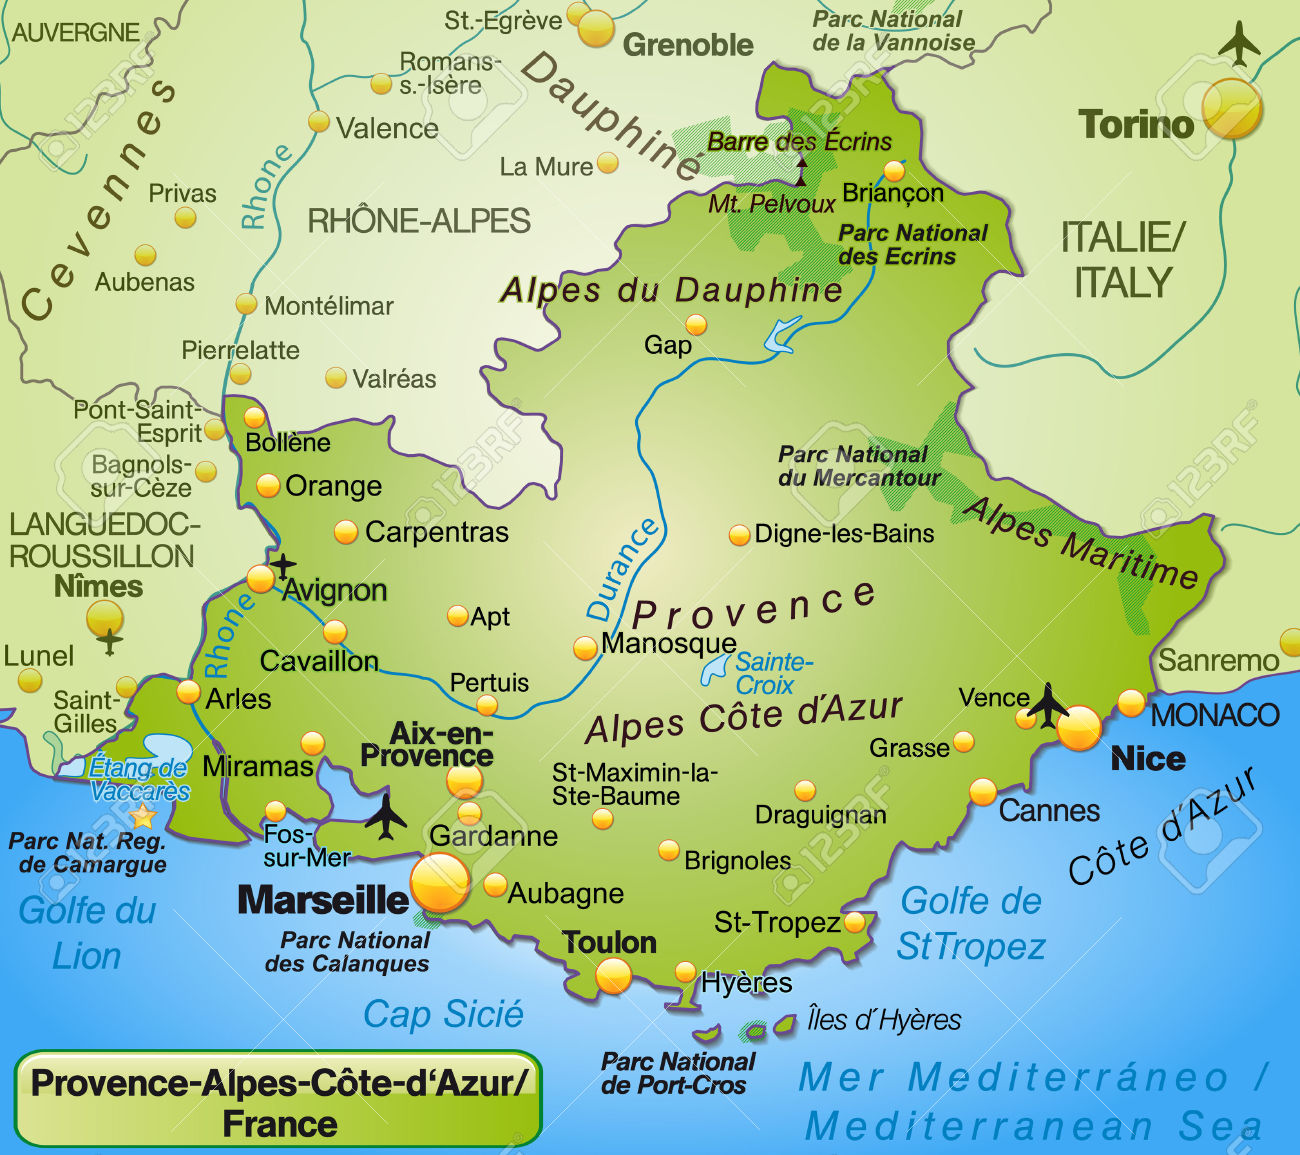 map-of-provence-alpes-cote-d-azur.jpg